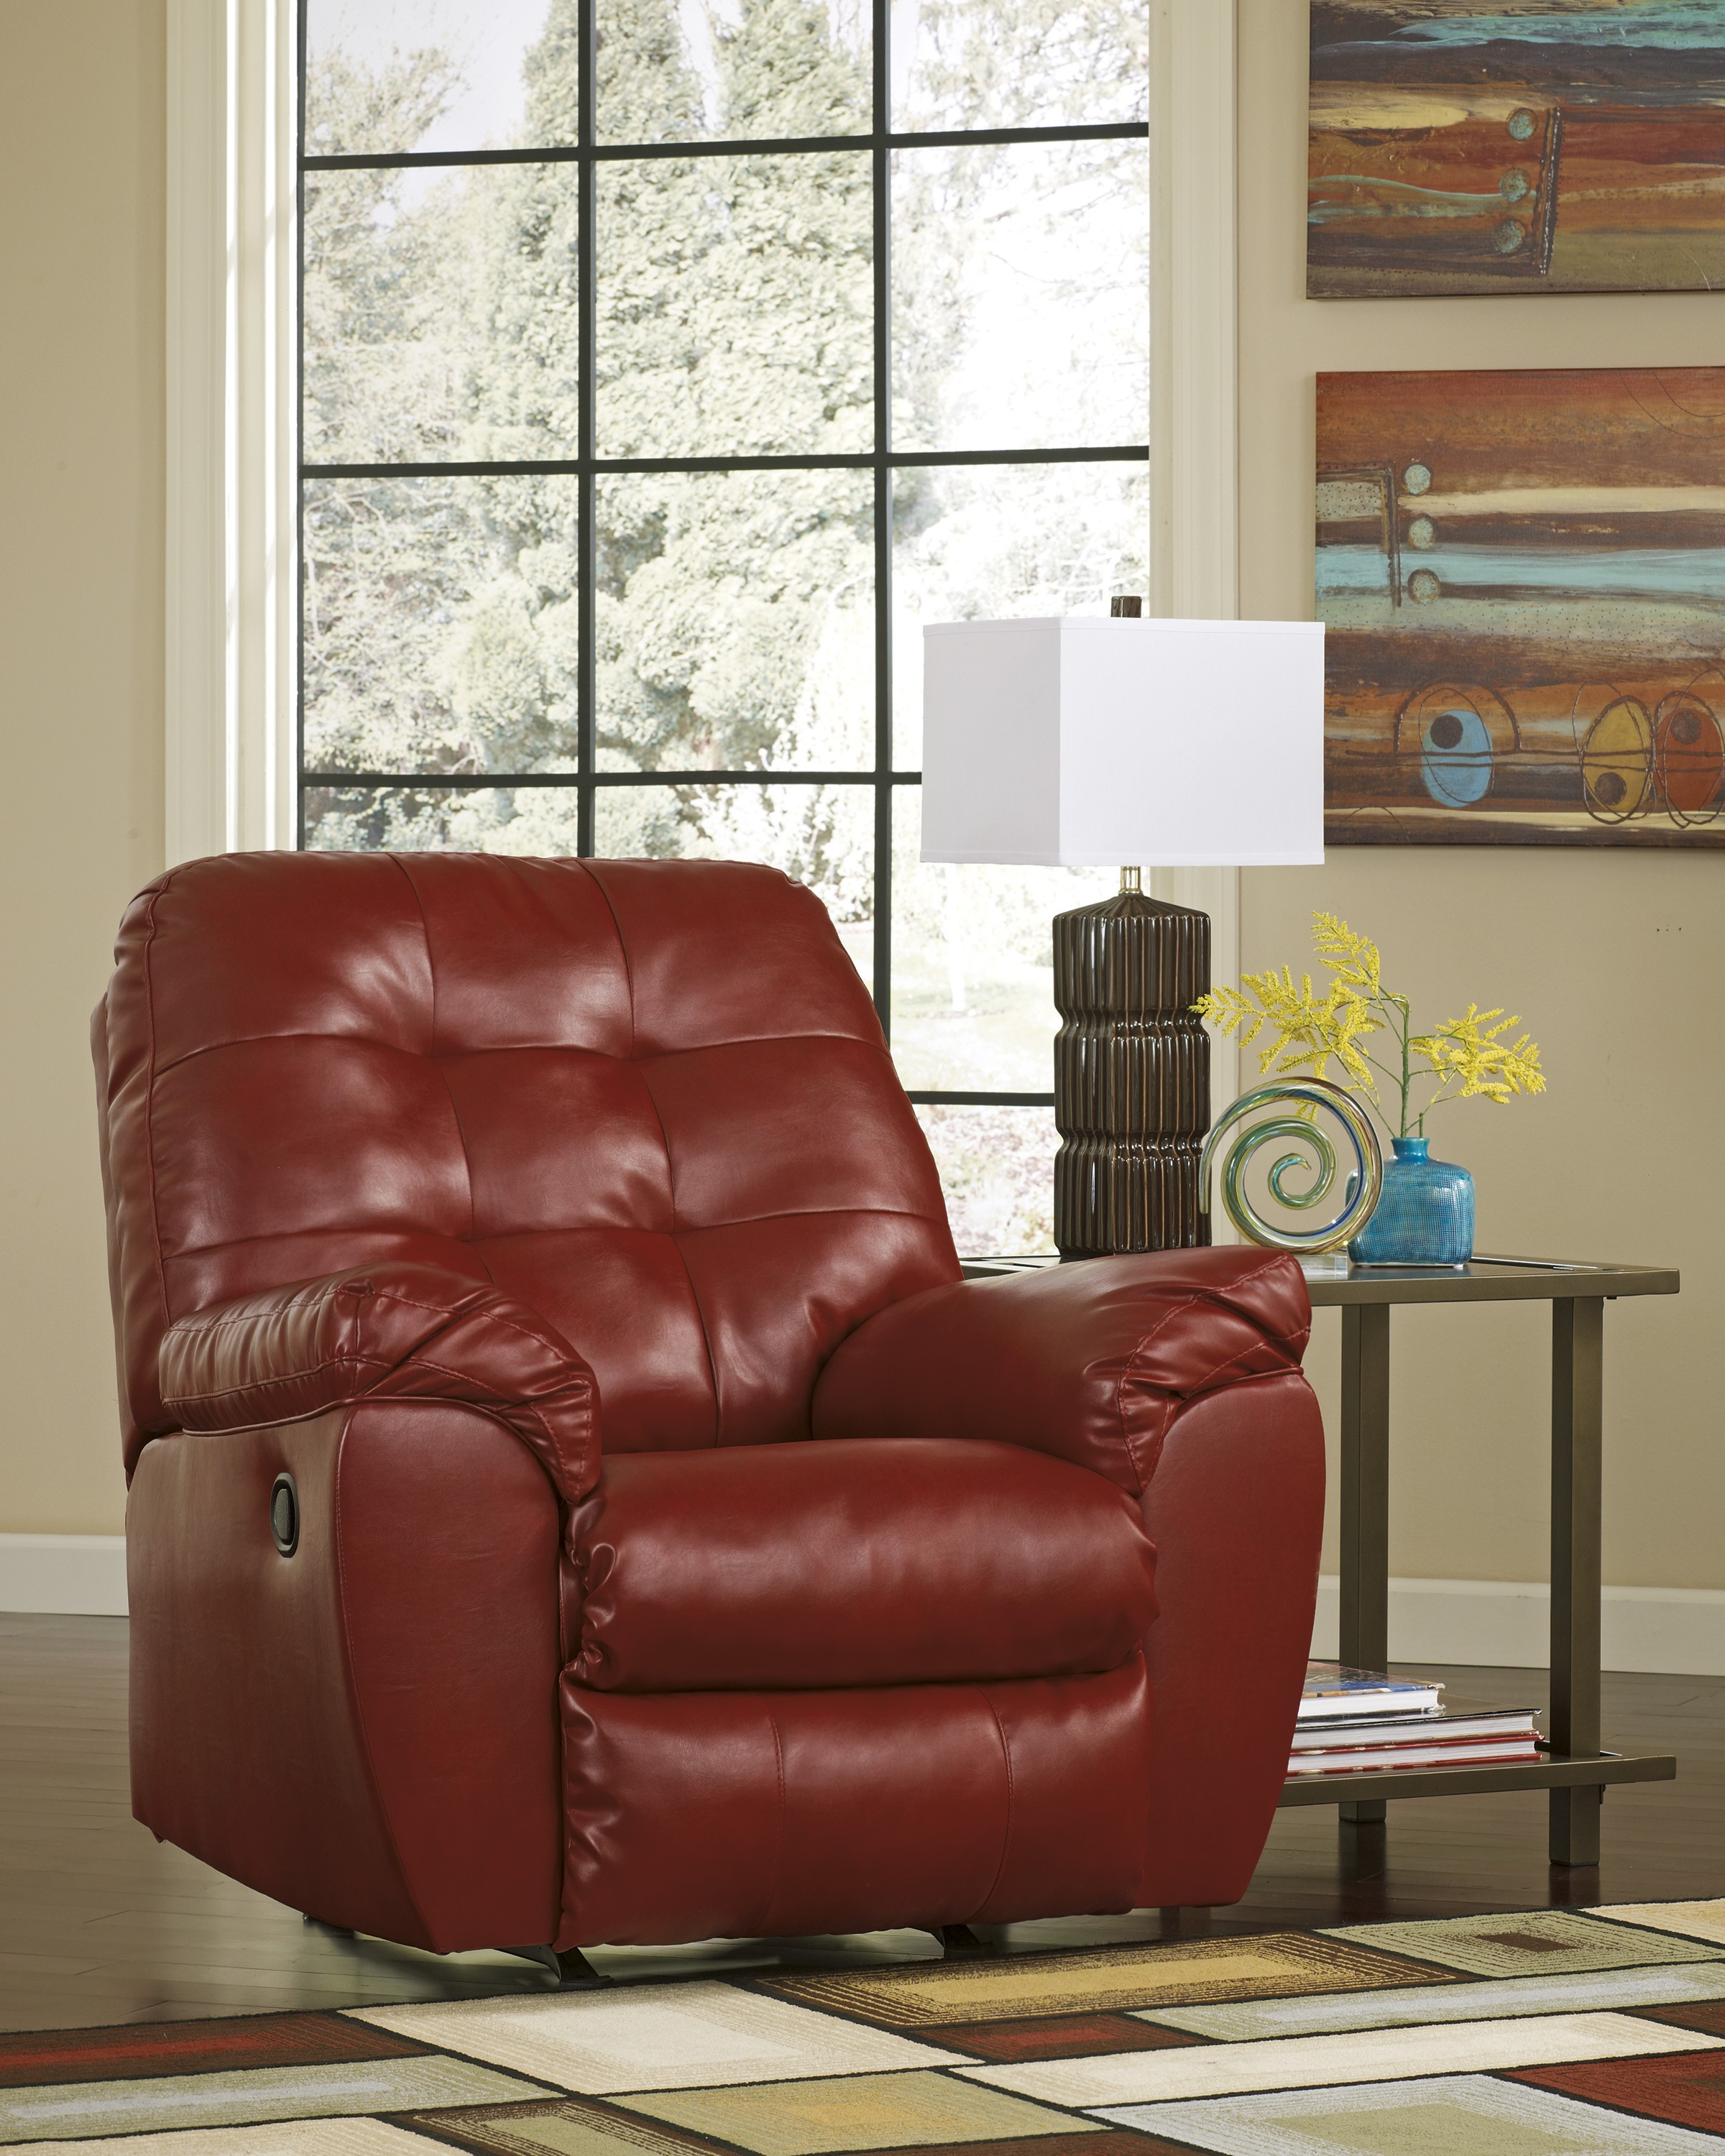 Leon Furniture | Buy Living Rooms Recliners Online, Phoenix With Regard To Hercules Chocolate Swivel Glider Recliners (View 18 of 20)